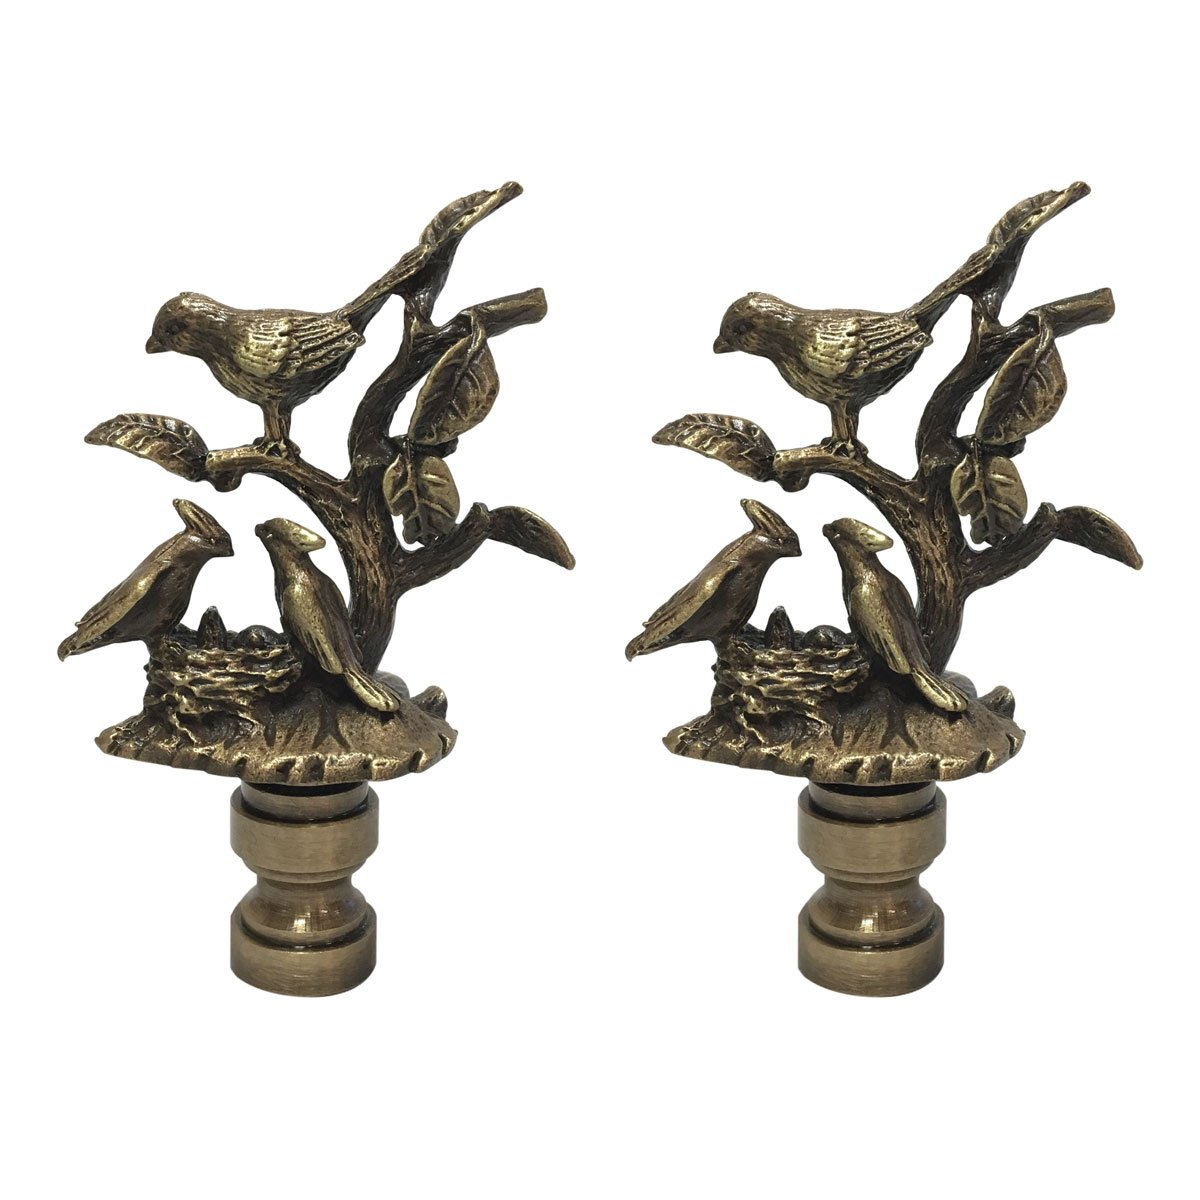 Royal Designs Nesting Birds Design Lamp Finial with Antiqued Brass Finish - Set of 2